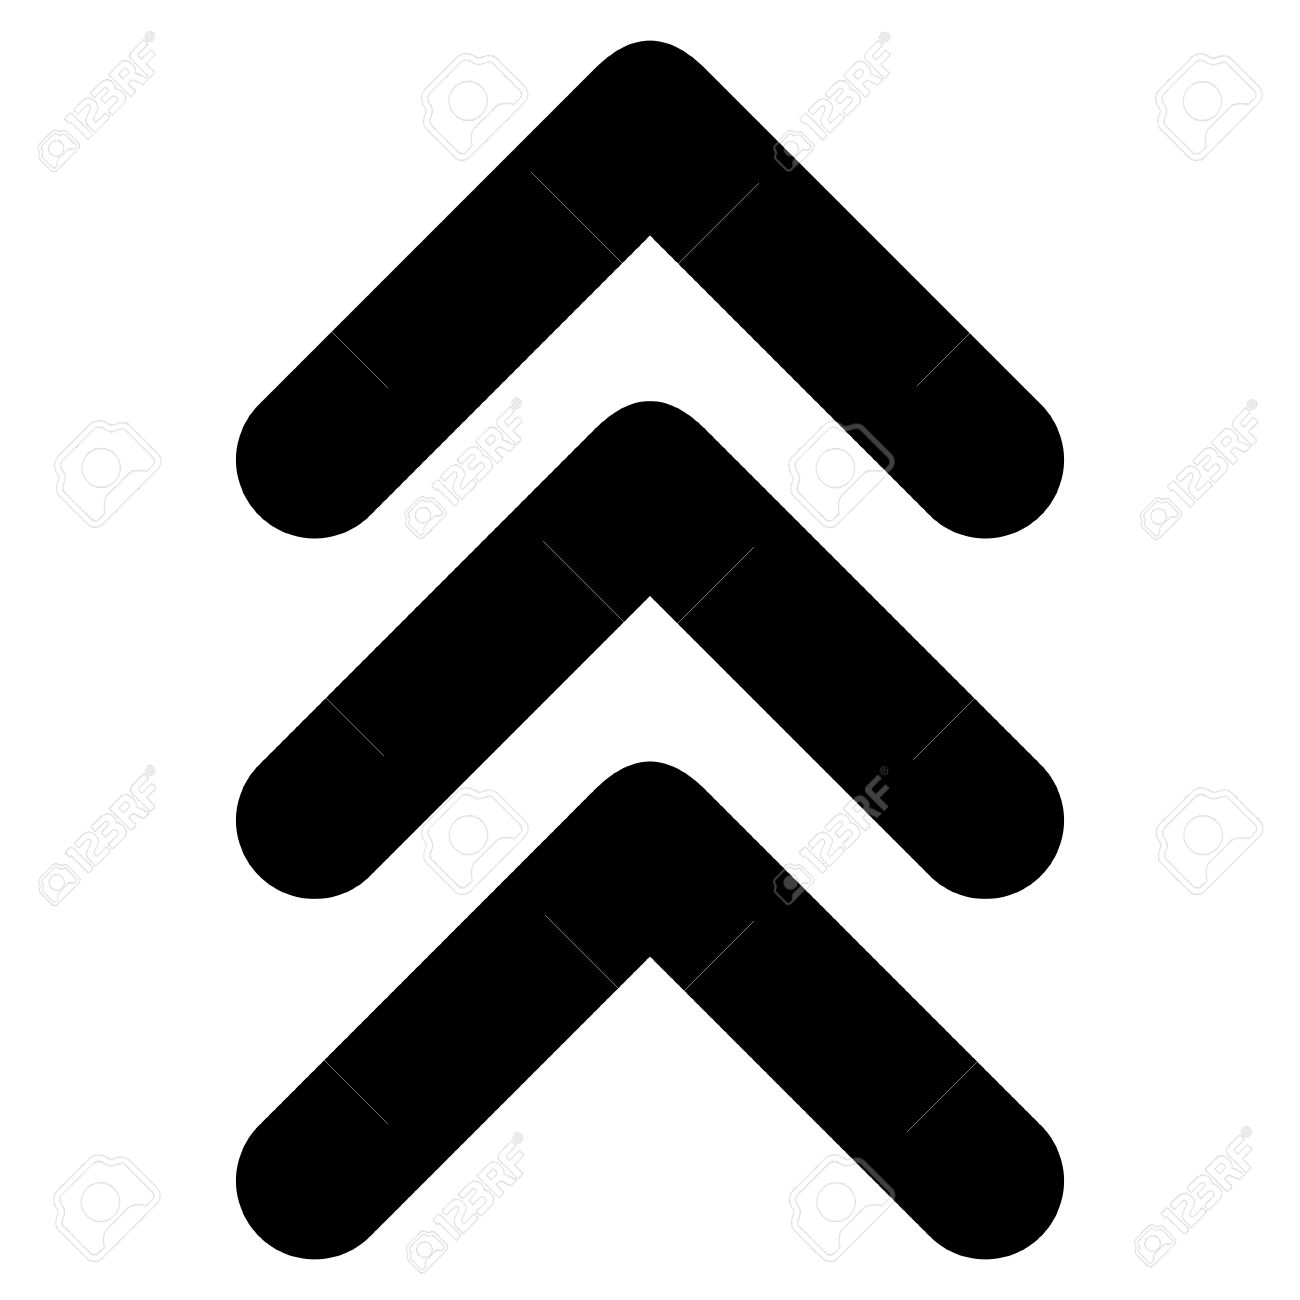 triple arrowhead up vector icon style is flat icon symbol black rh 123rf com arrowhead vector free vectorworks arrowhead